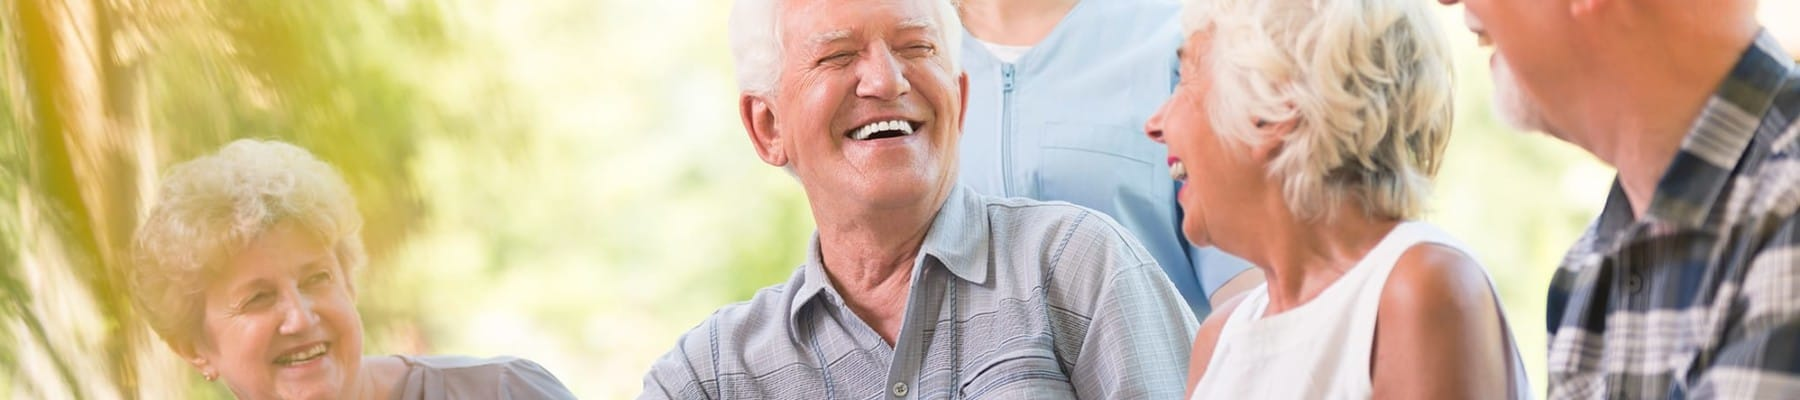 Where To Meet Seniors In Phoenix